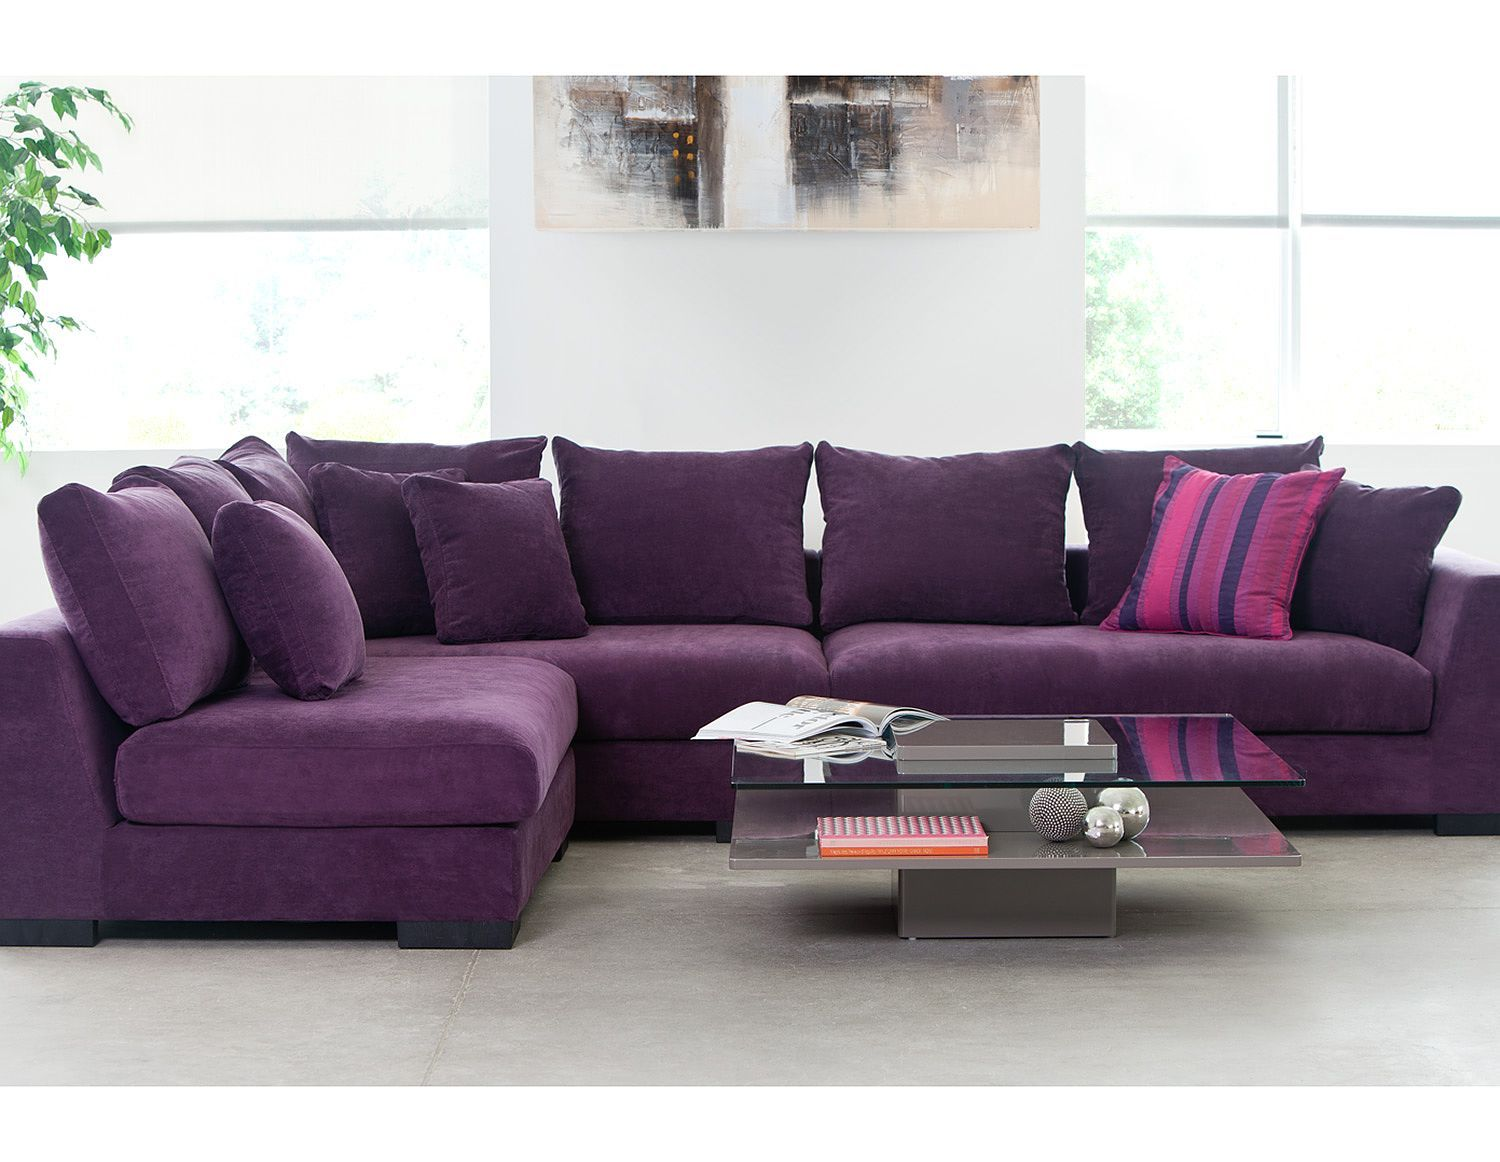 Living Room Sectional Sofas Cooper Purple Faints A